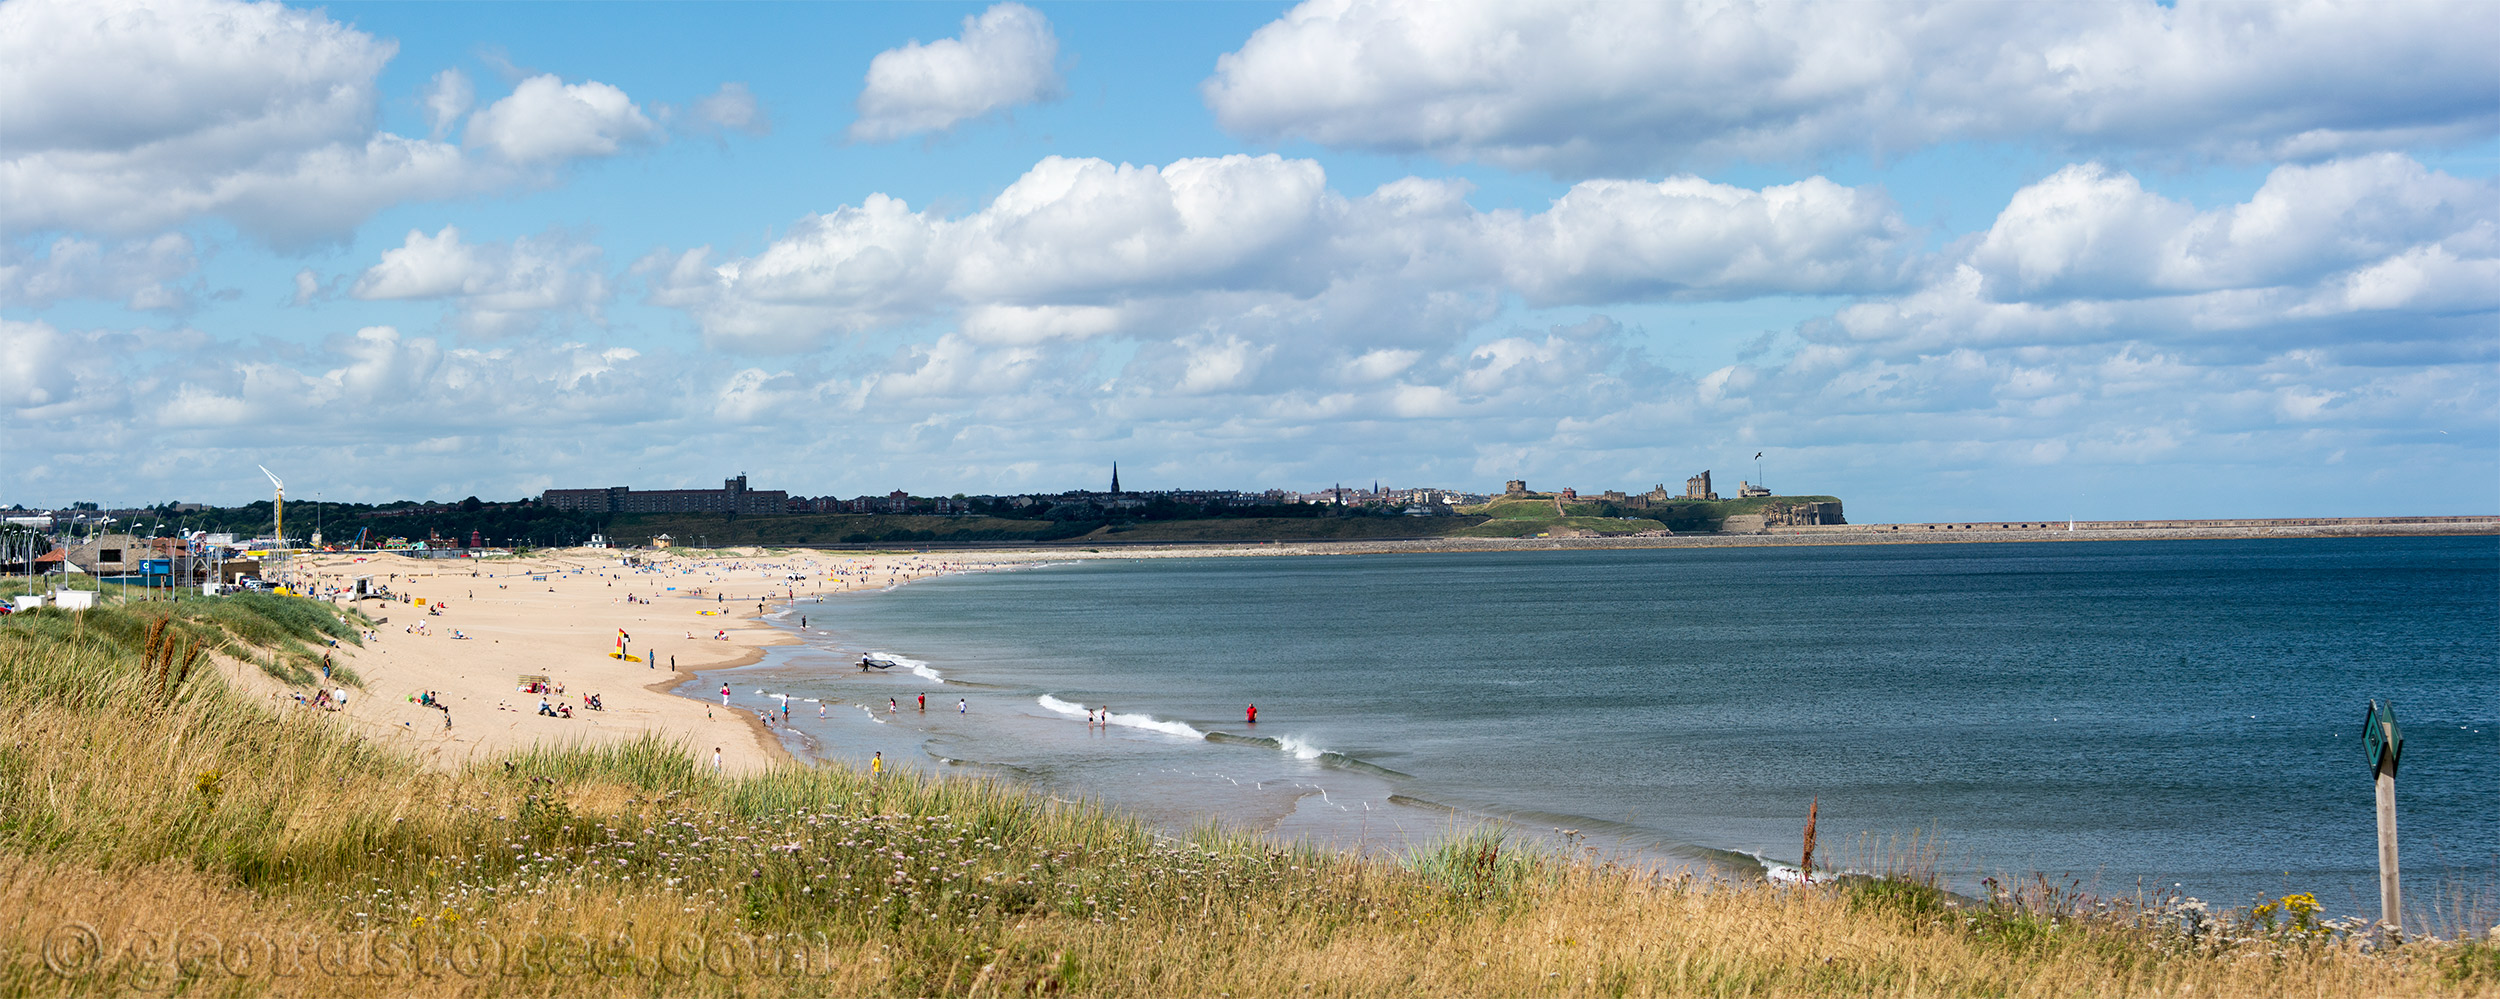 South-Shields-Beach-and-Pier